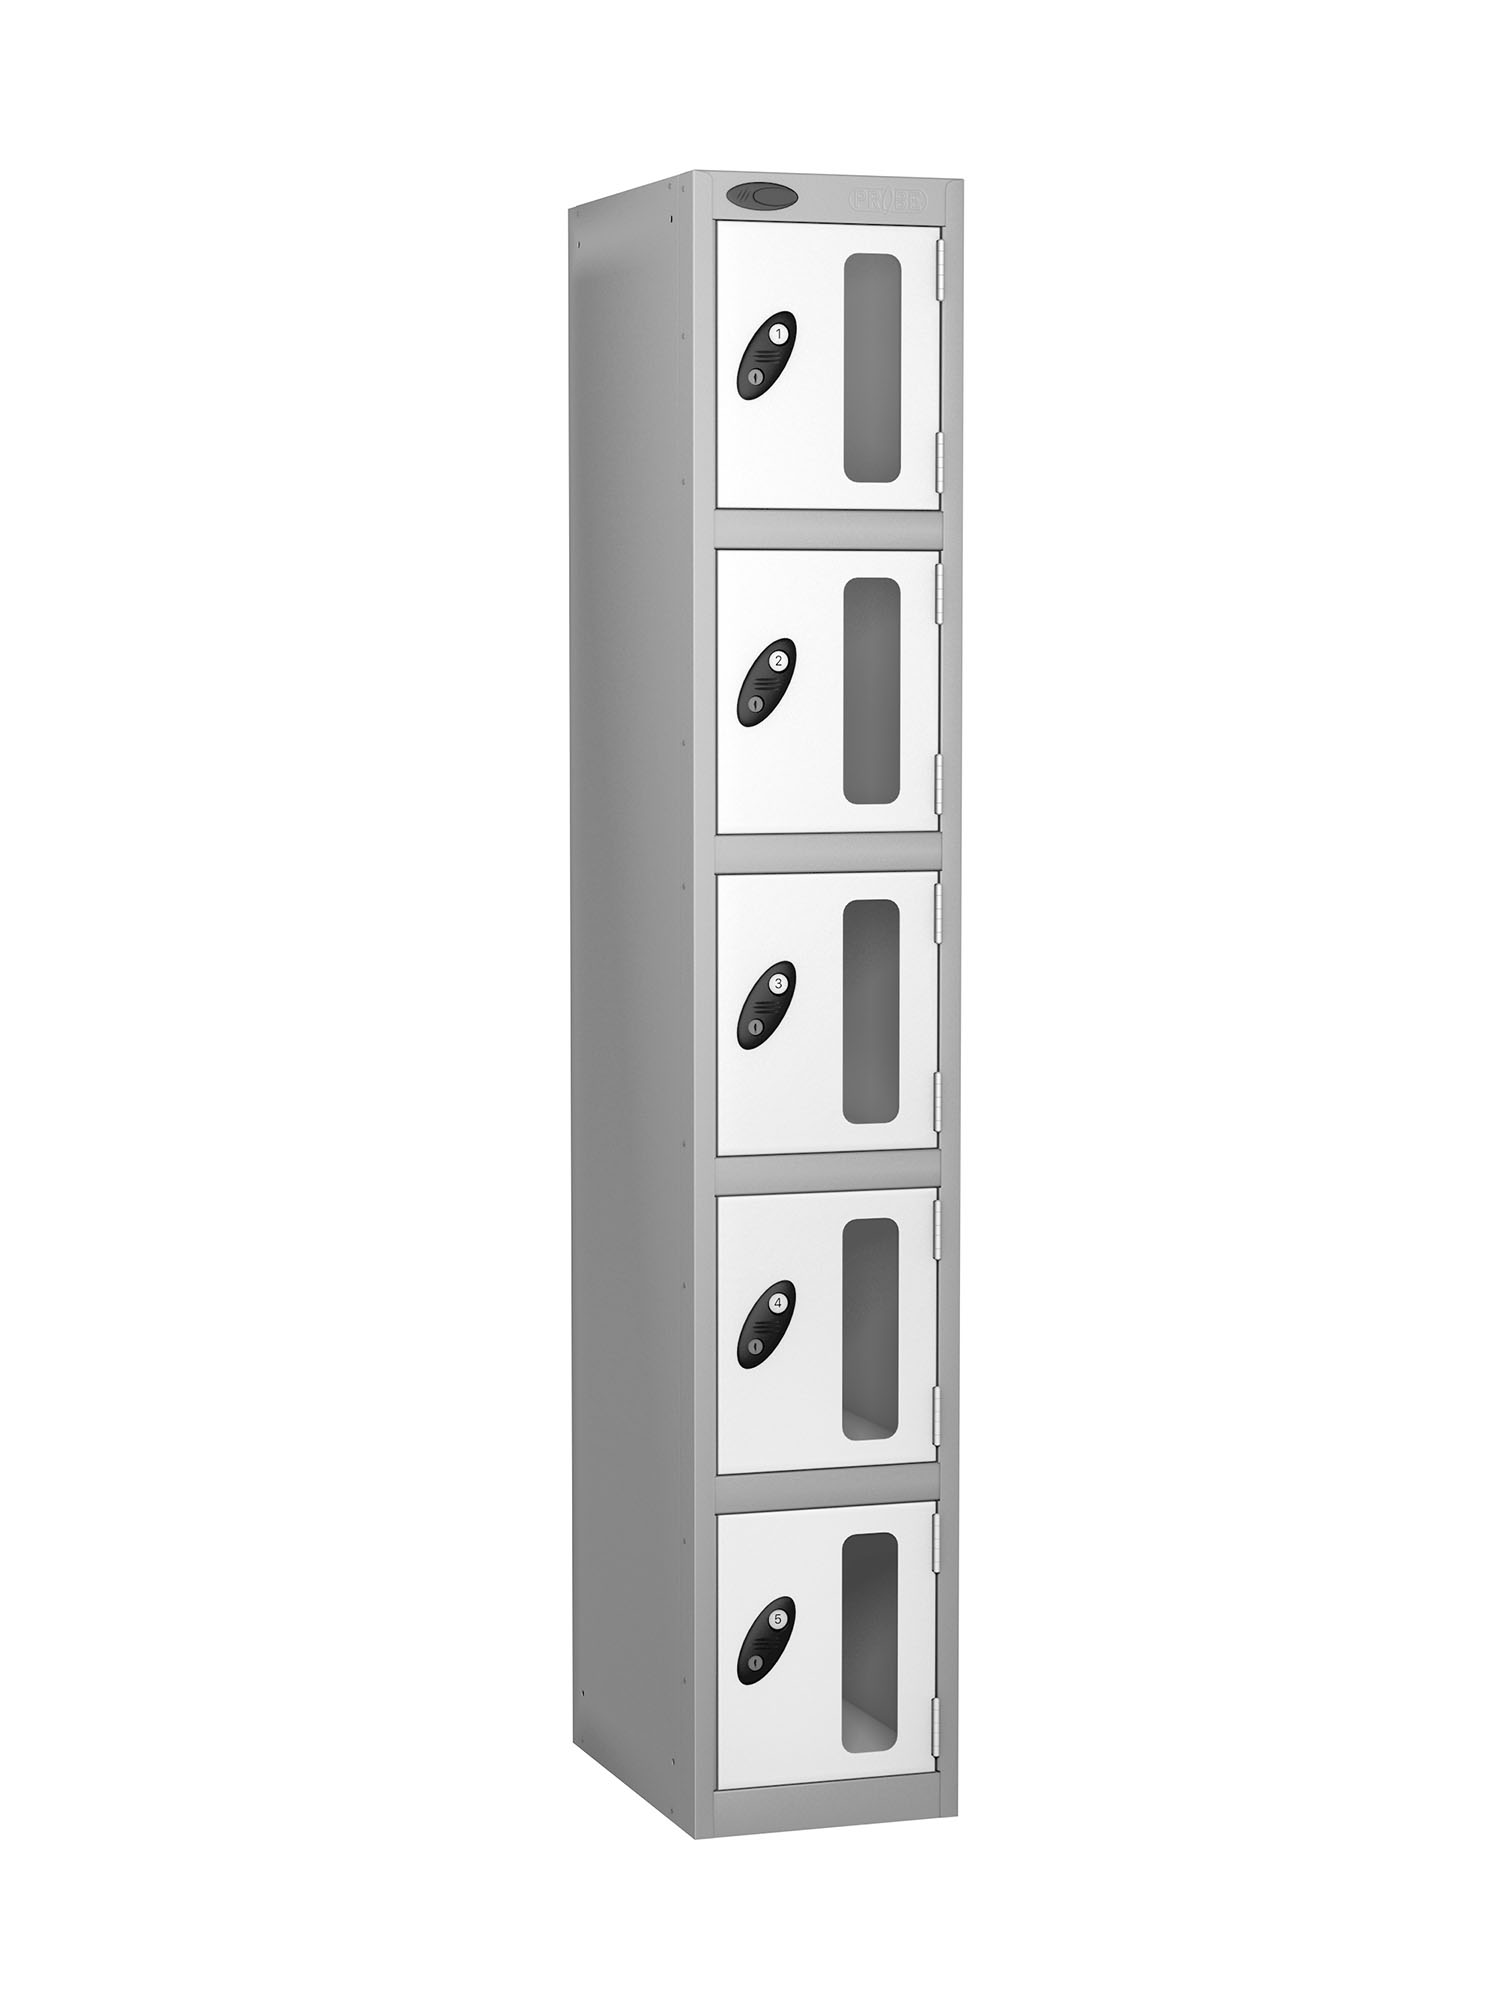 Probe 5 doors vision panel anti-stock theft locker white